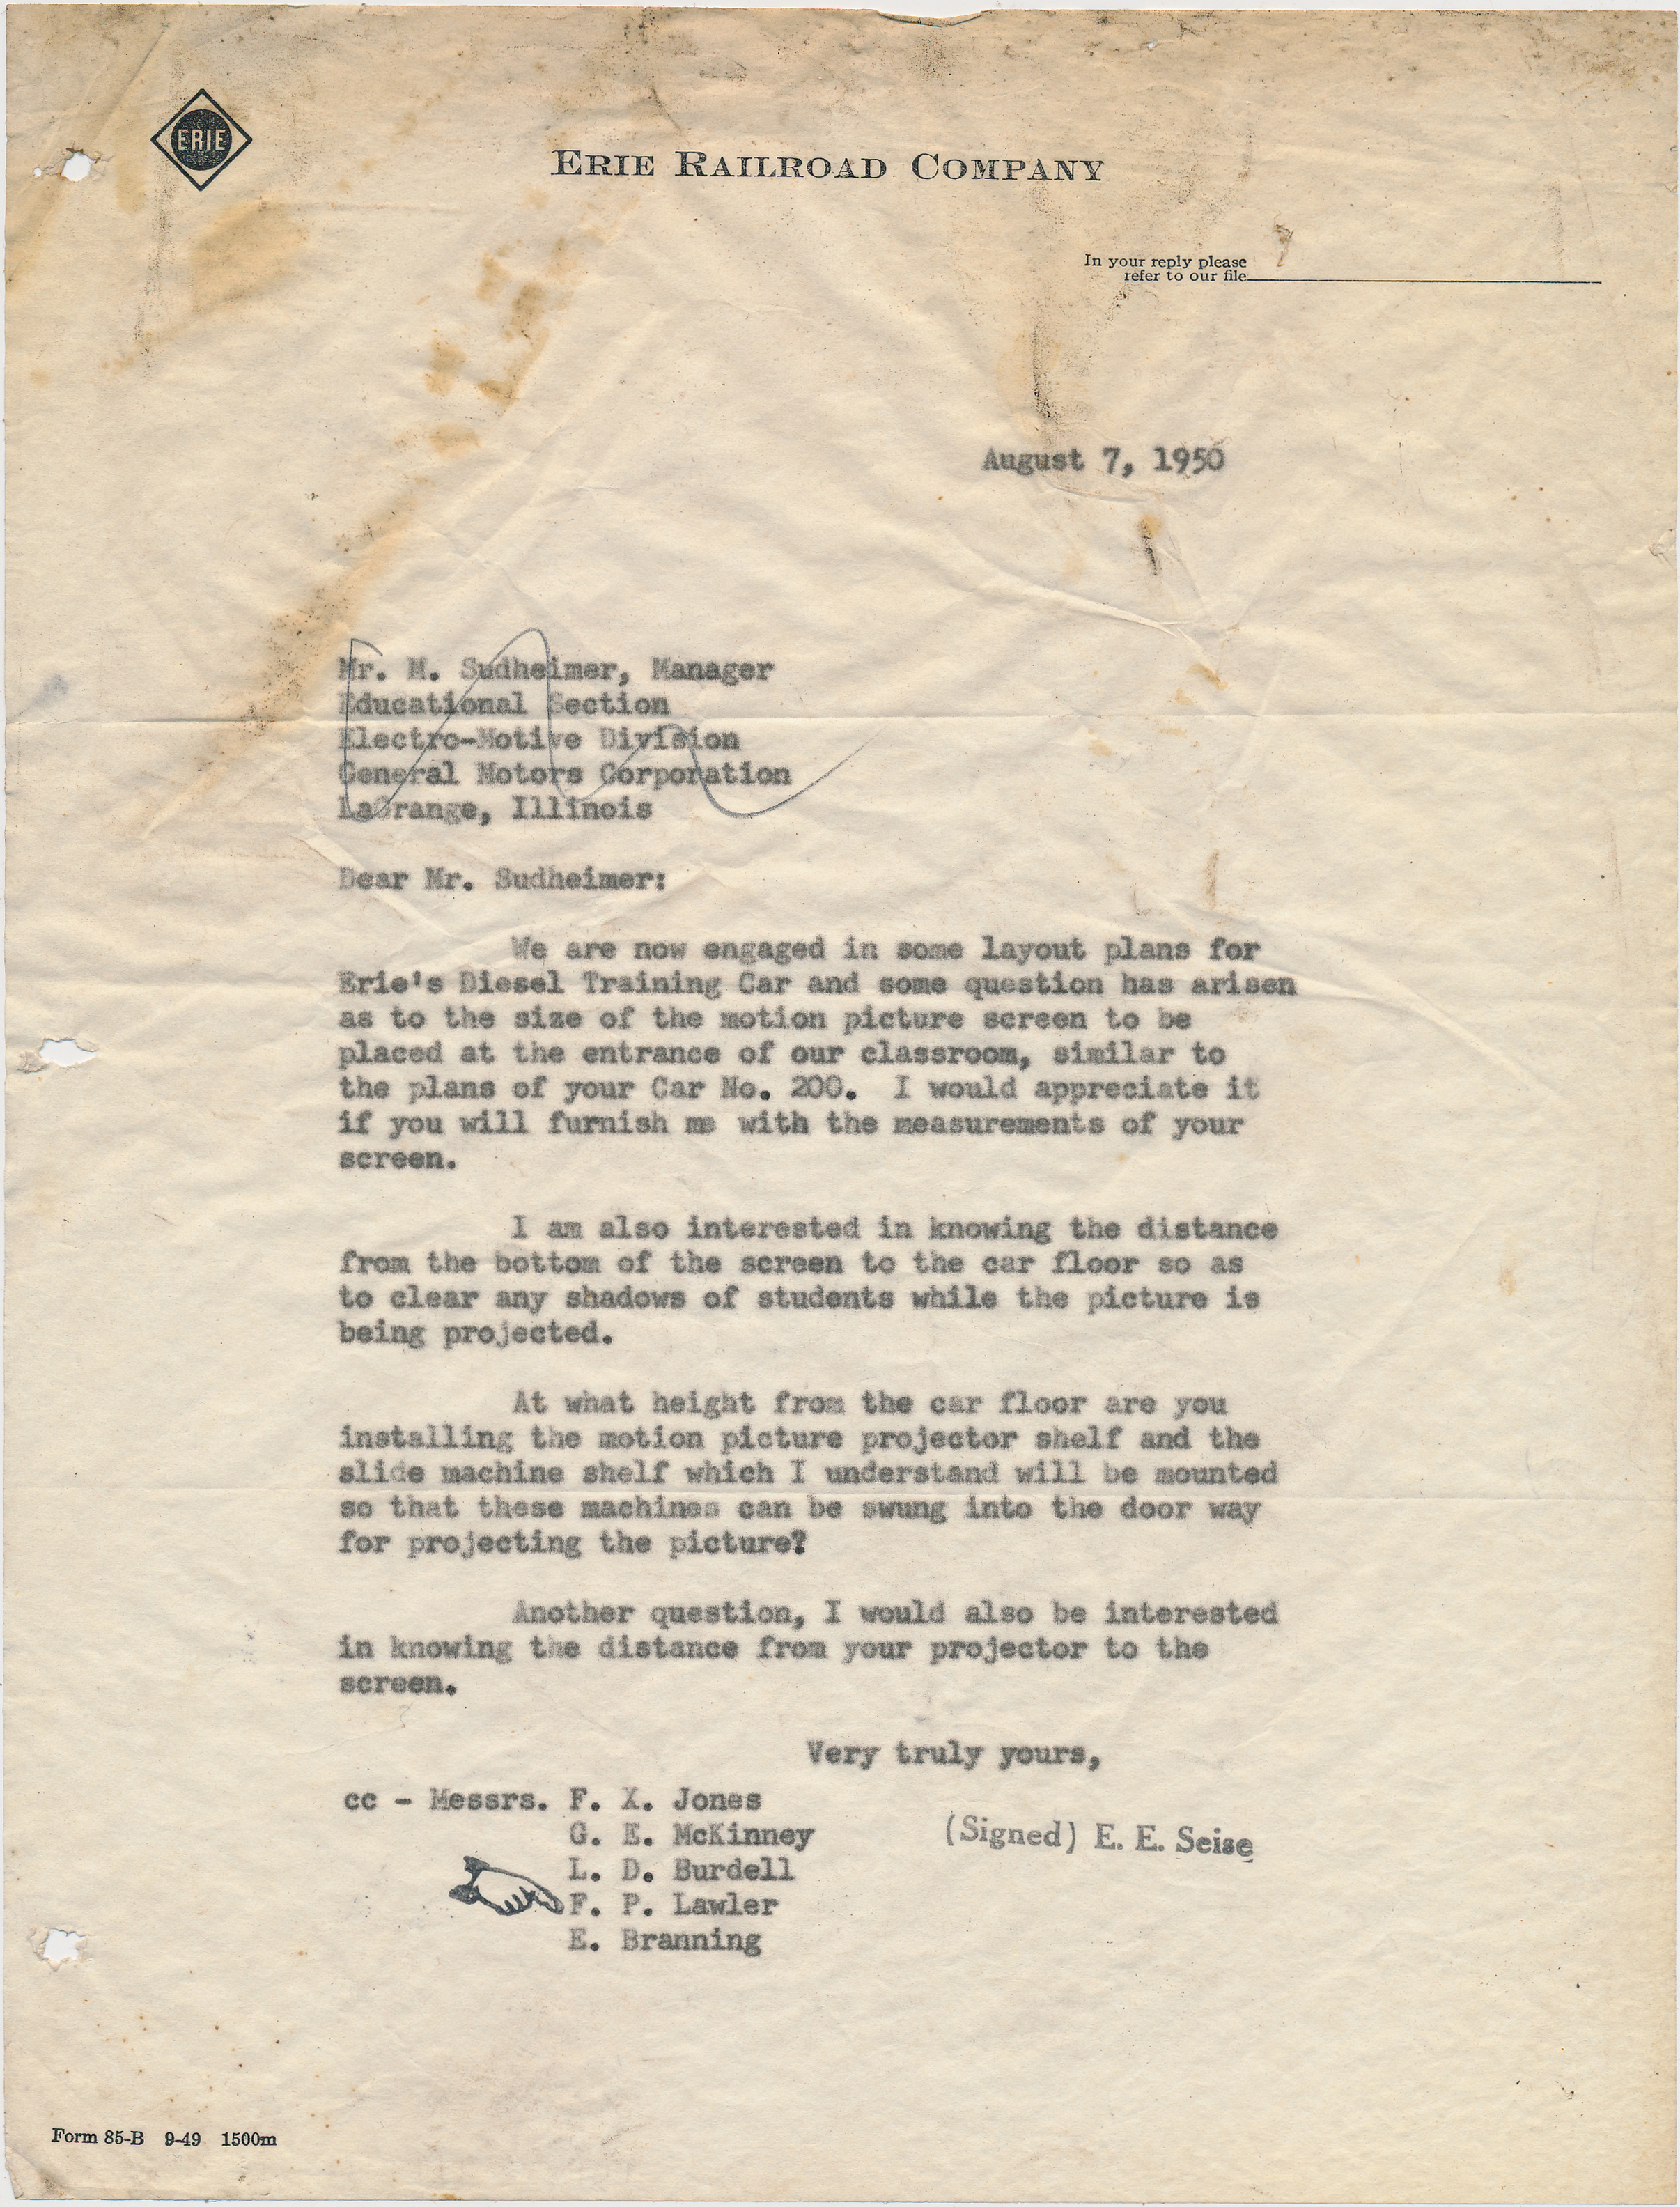 This August 7, 1950 letter was written by E. E. Seise of the Erie to M. Sudheimer of the EMD Educational Section, inquiring about potential screen and projector setups for Erie #10.  (Tri-State Railway Historical Society collection)